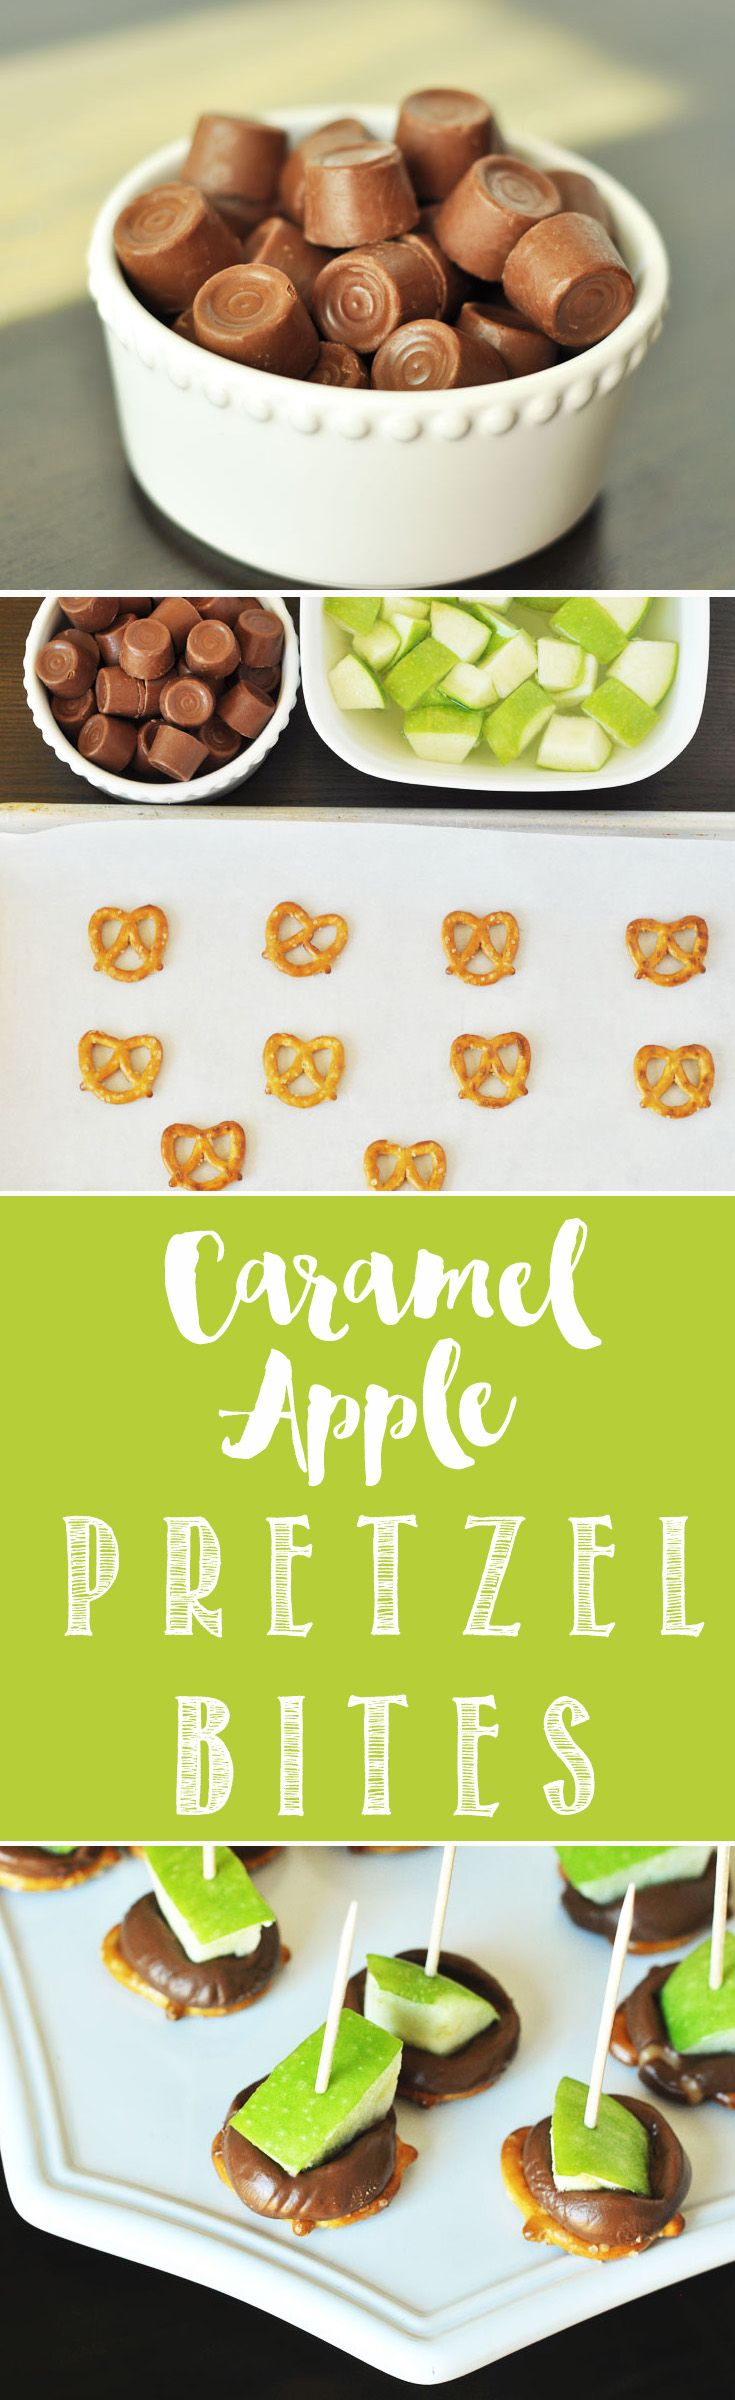 Caramel Apple Pretzel Bites.